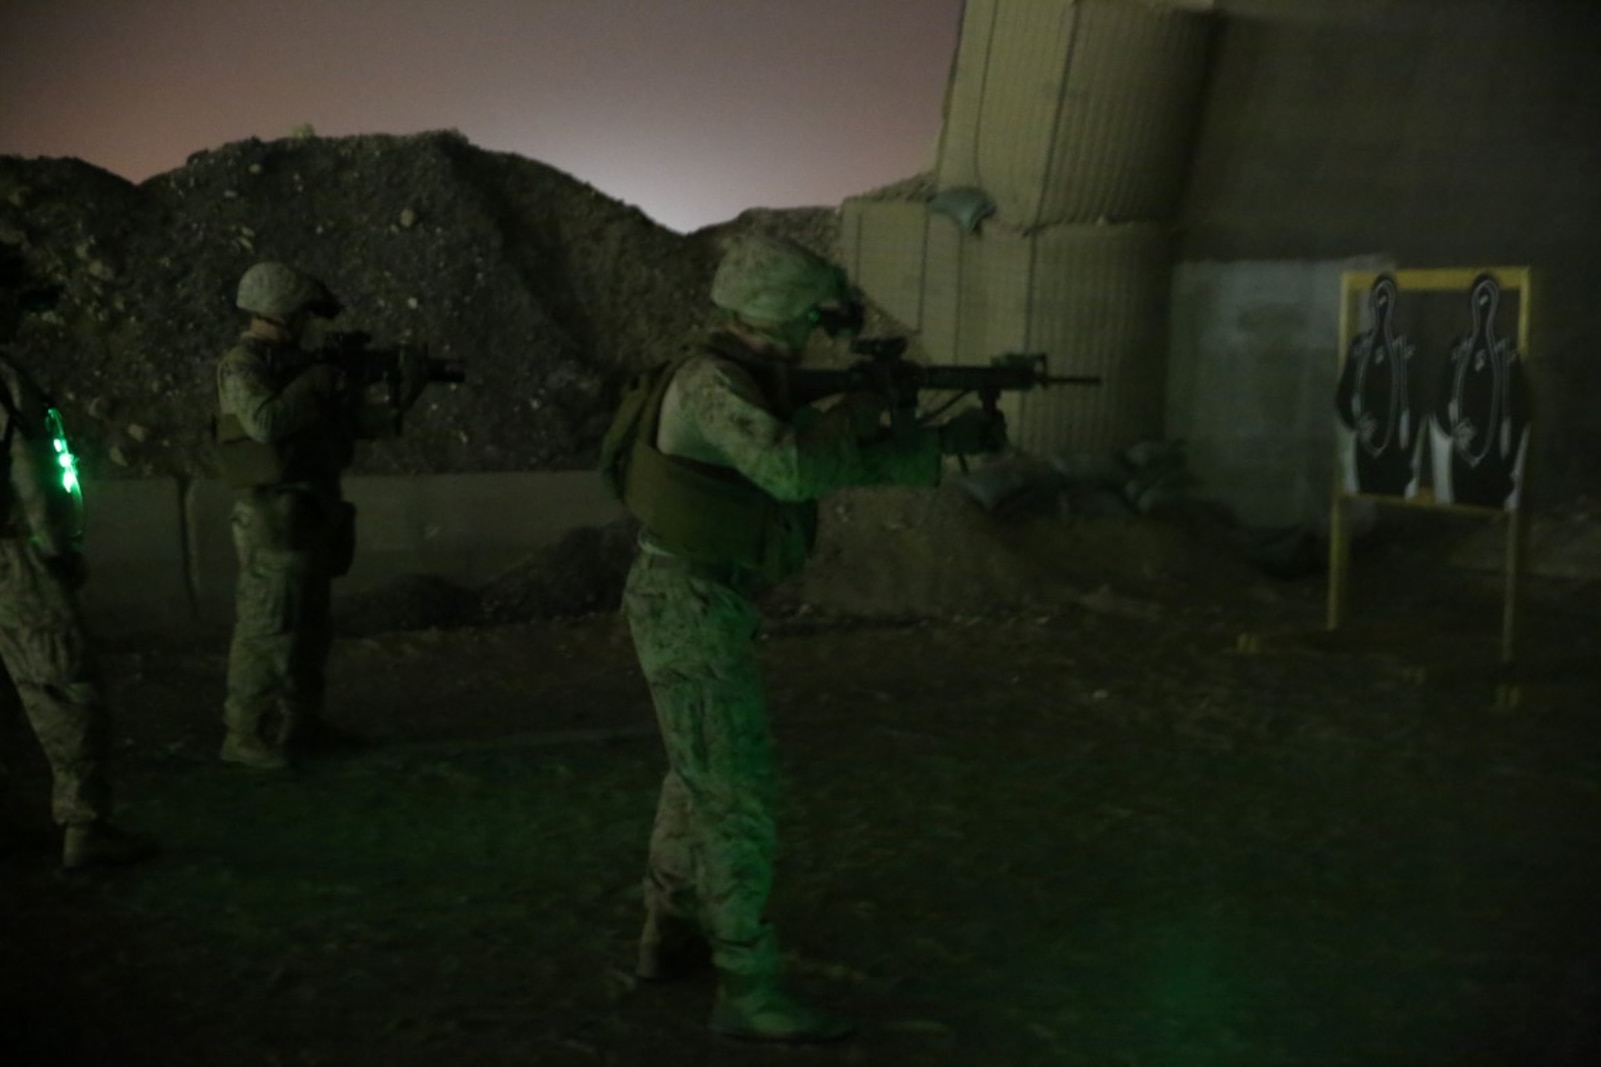 U.S. Marines with Headquarters Company, 3rd Battalion, 7th Marine Regiment, Special Purpose Marine Air-Ground Task Force-Crisis Response-Central Command, fire their rifles at close-range targets during a night range in Southwest Asia, Aug. 8, 2015. These Marines provide security at one of the SPMAGTF operating bases in the Middle East. The Marines and Sailors of SPMAGTF-CR-CC offer rapid, task-organized solutions to the commander of USCENTCOM across an area of operations spanning 20 countries.